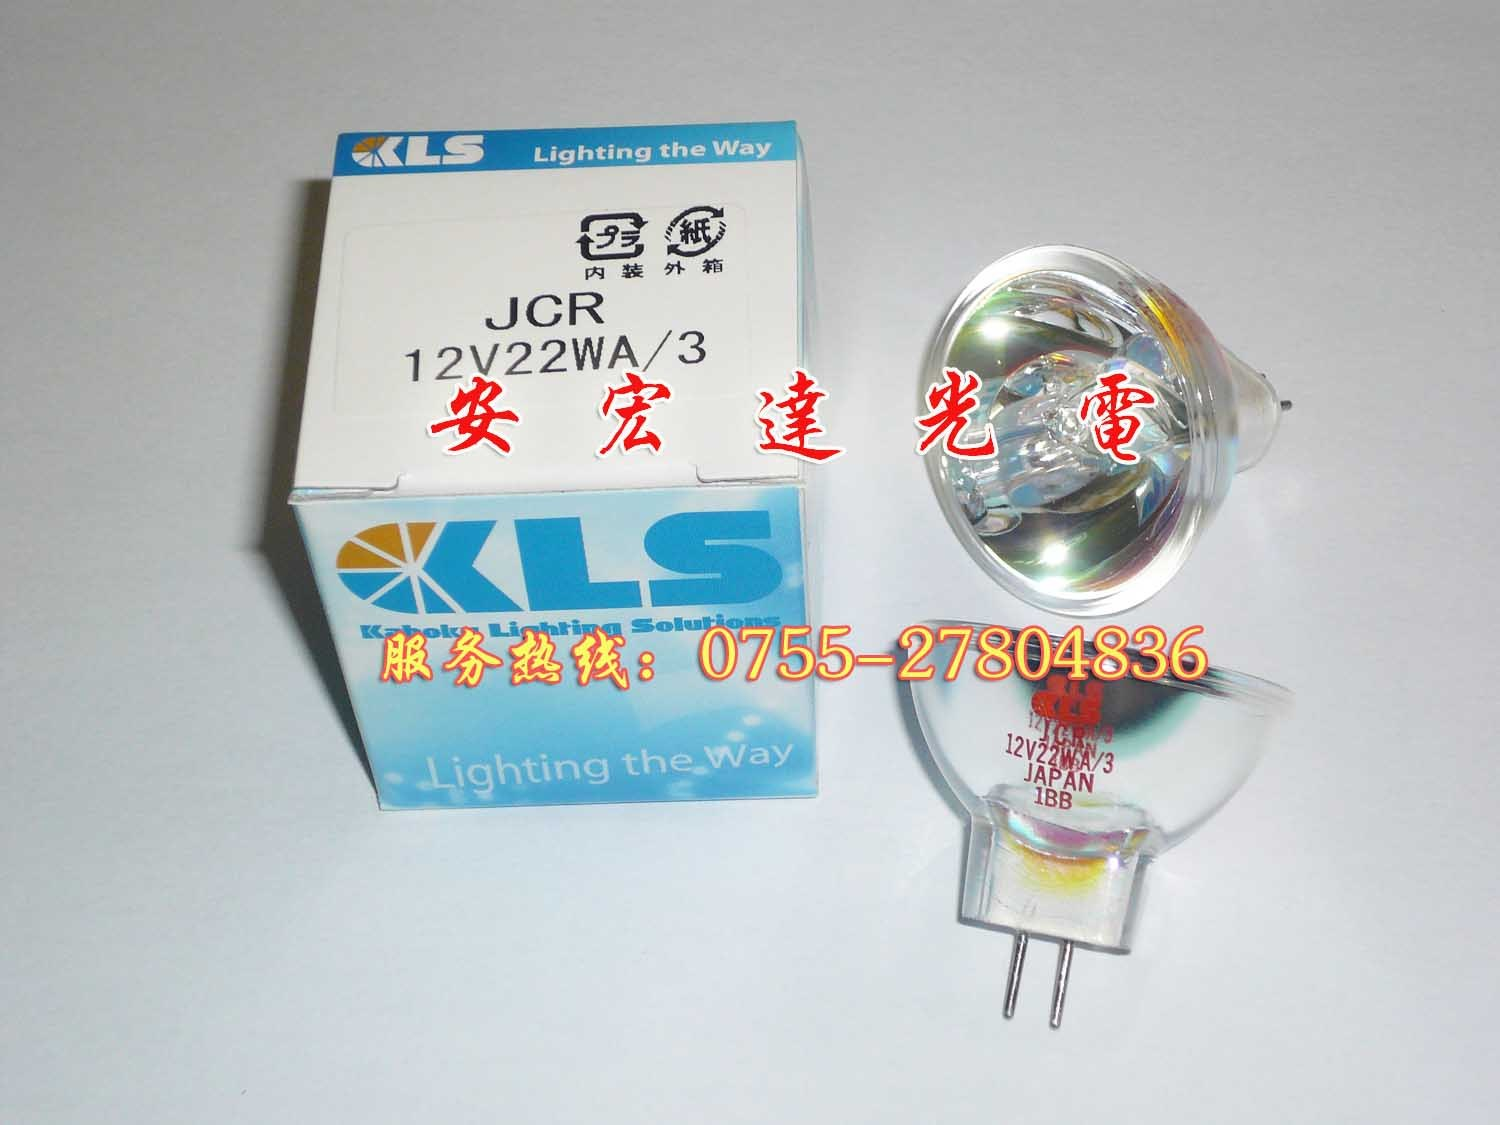 Kls Microscope Bulb Jcr 12v22wa 3 , Optical Instrument Light Bulb sog zoom black tini